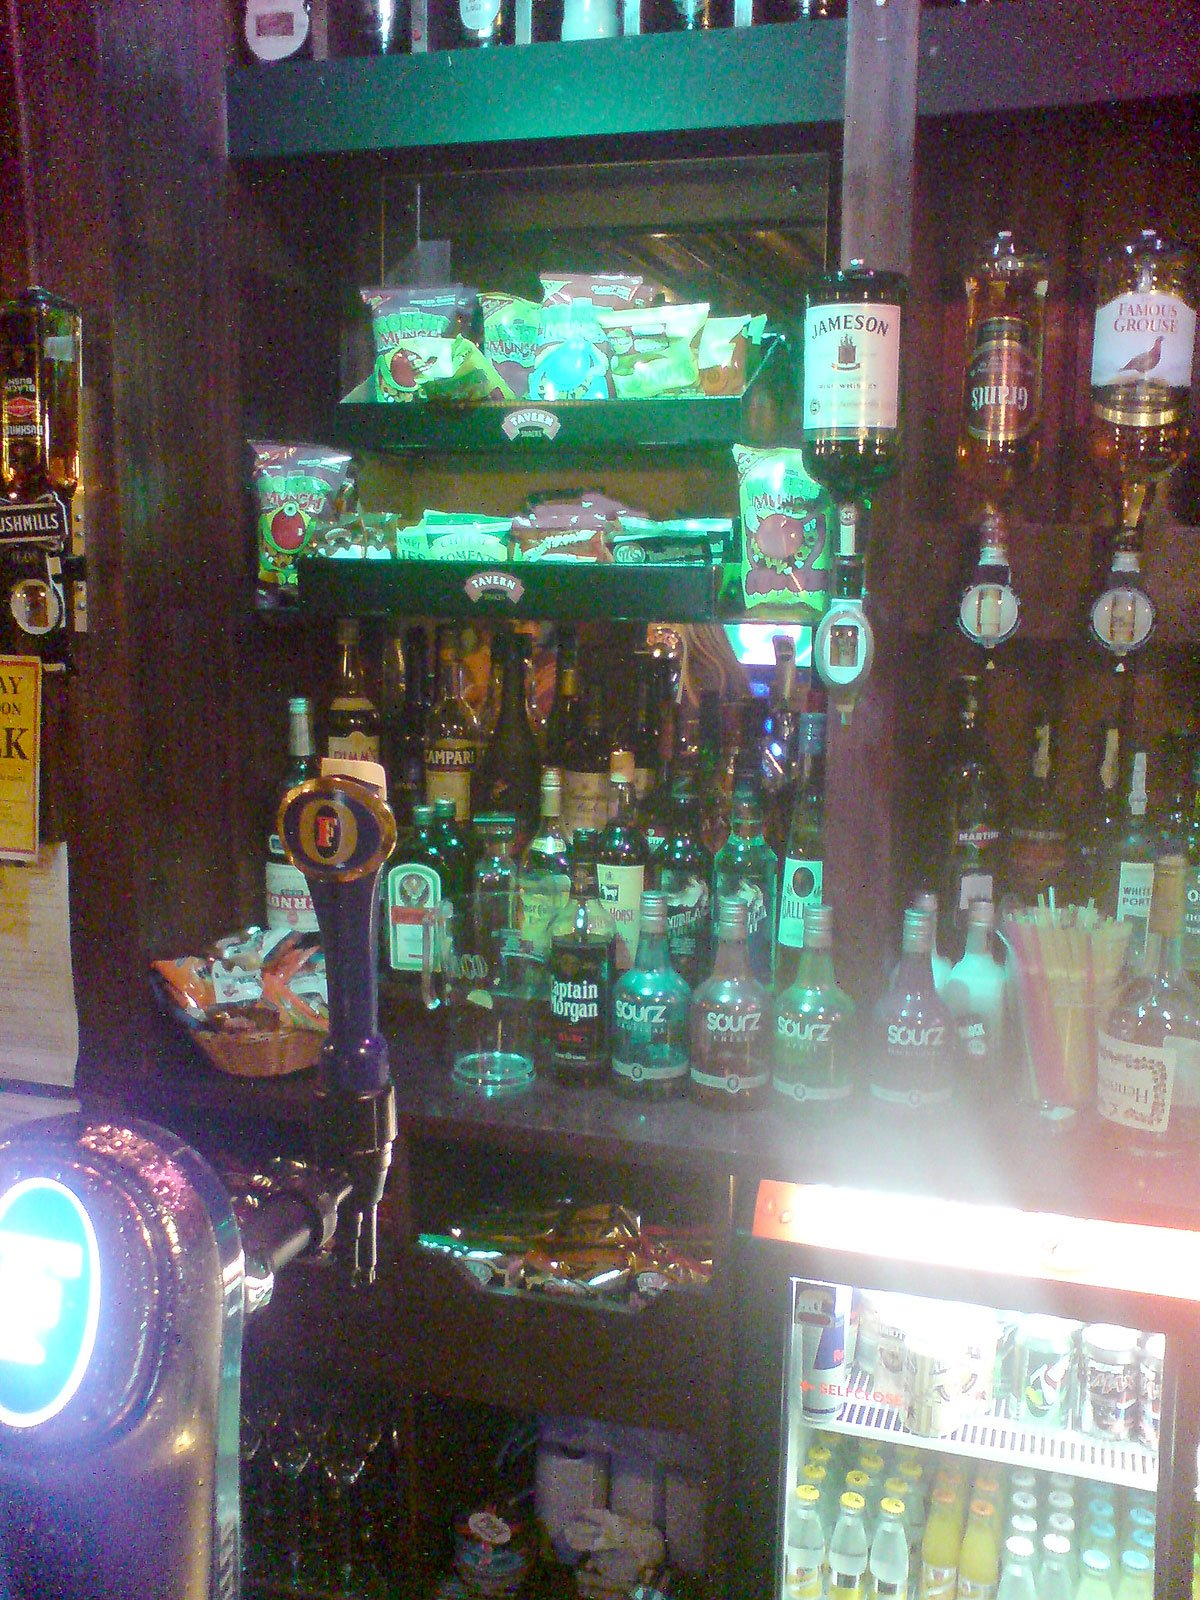 The Pelton Arms Greenwich London Pub Review2 - The Pelton Arms, Greenwich, London - Pub Review